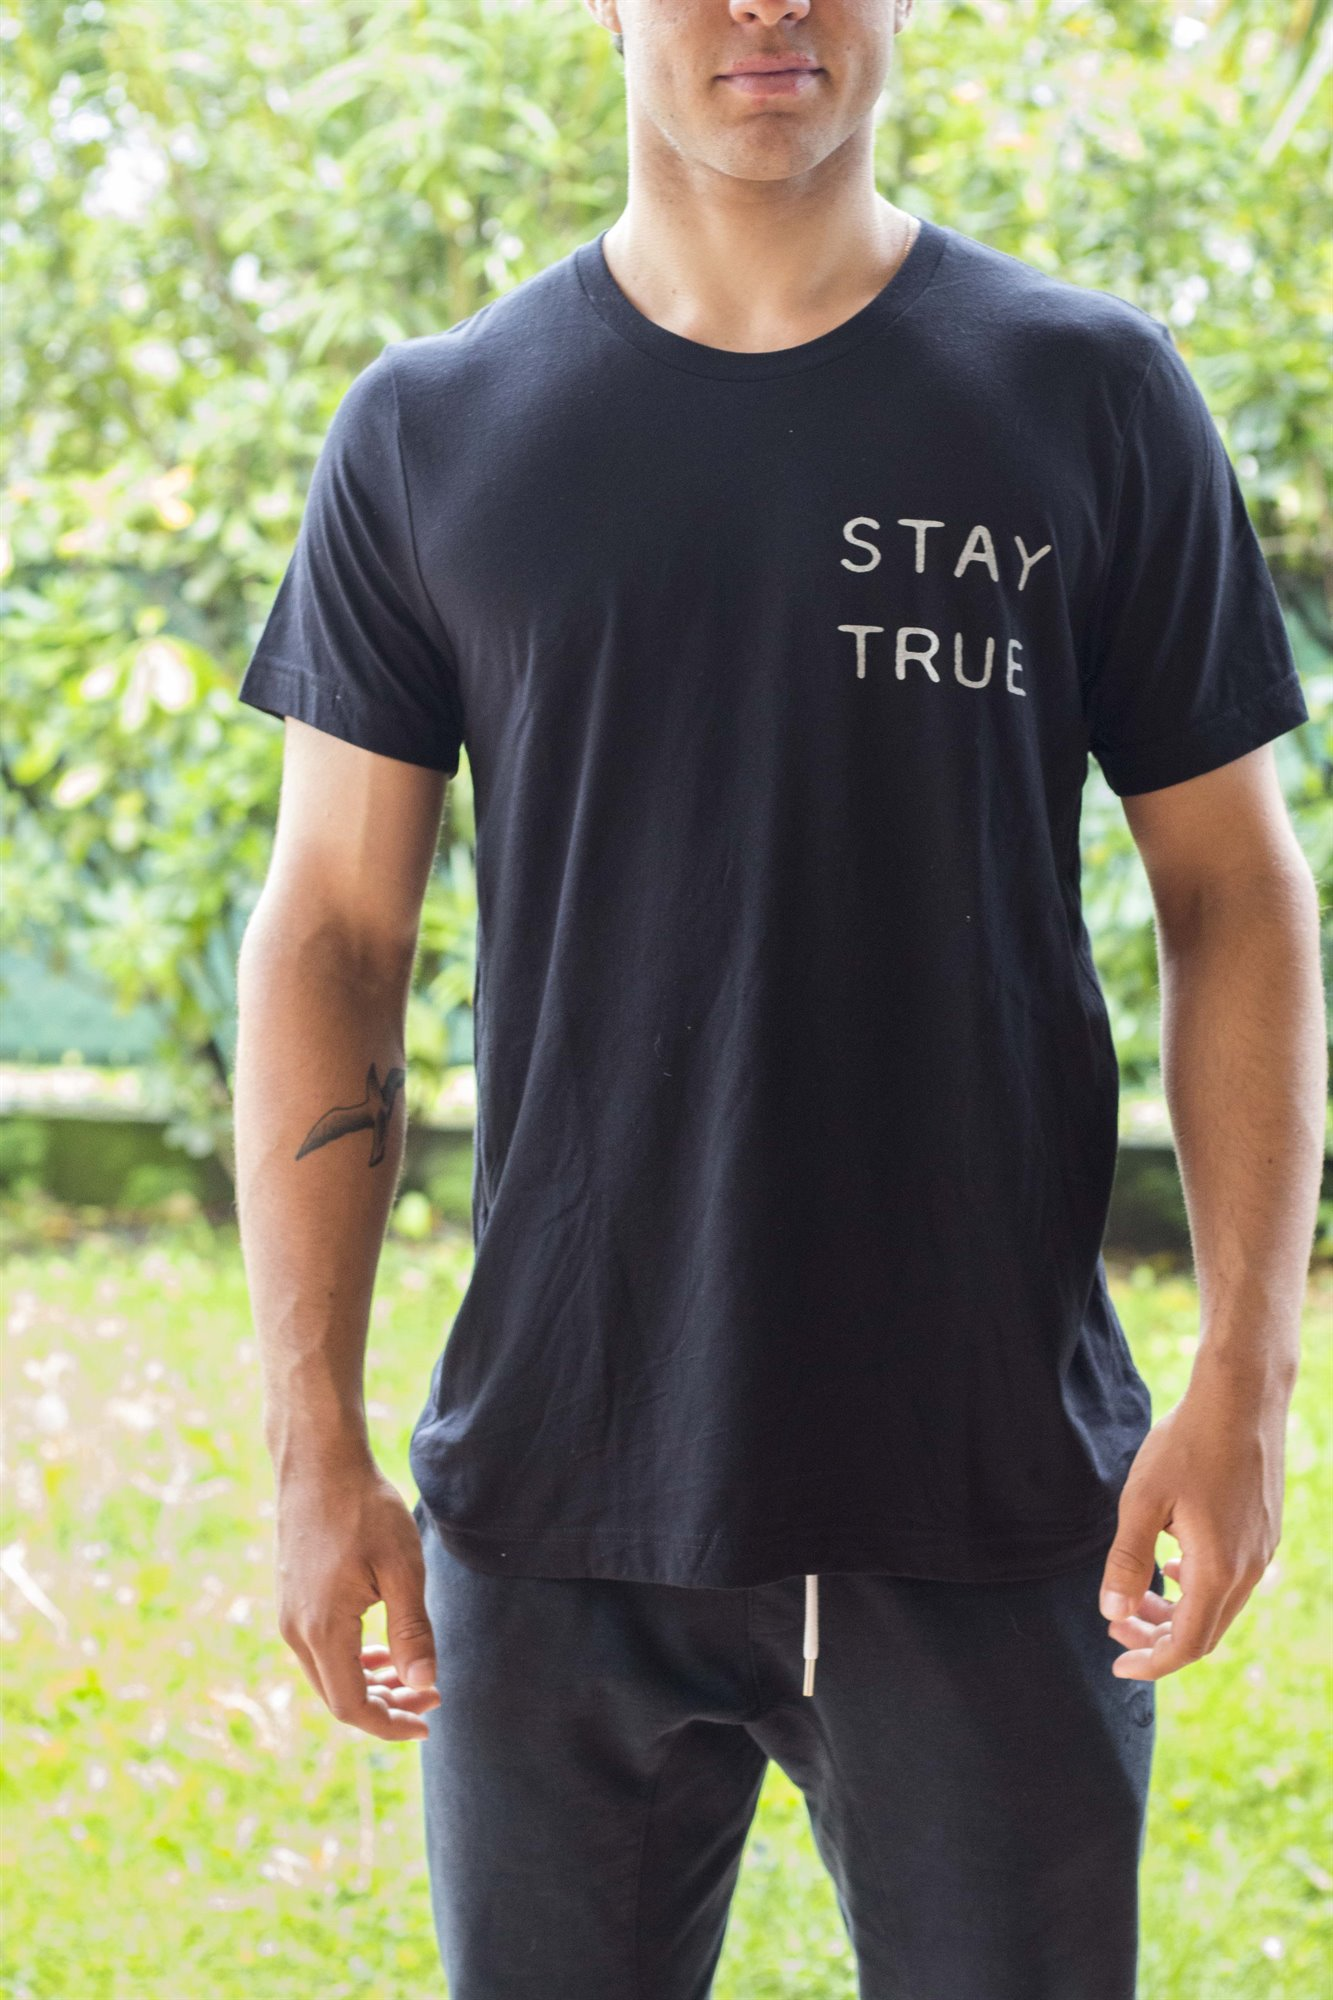 Shaka Limited Tshirt - STAY TRUE